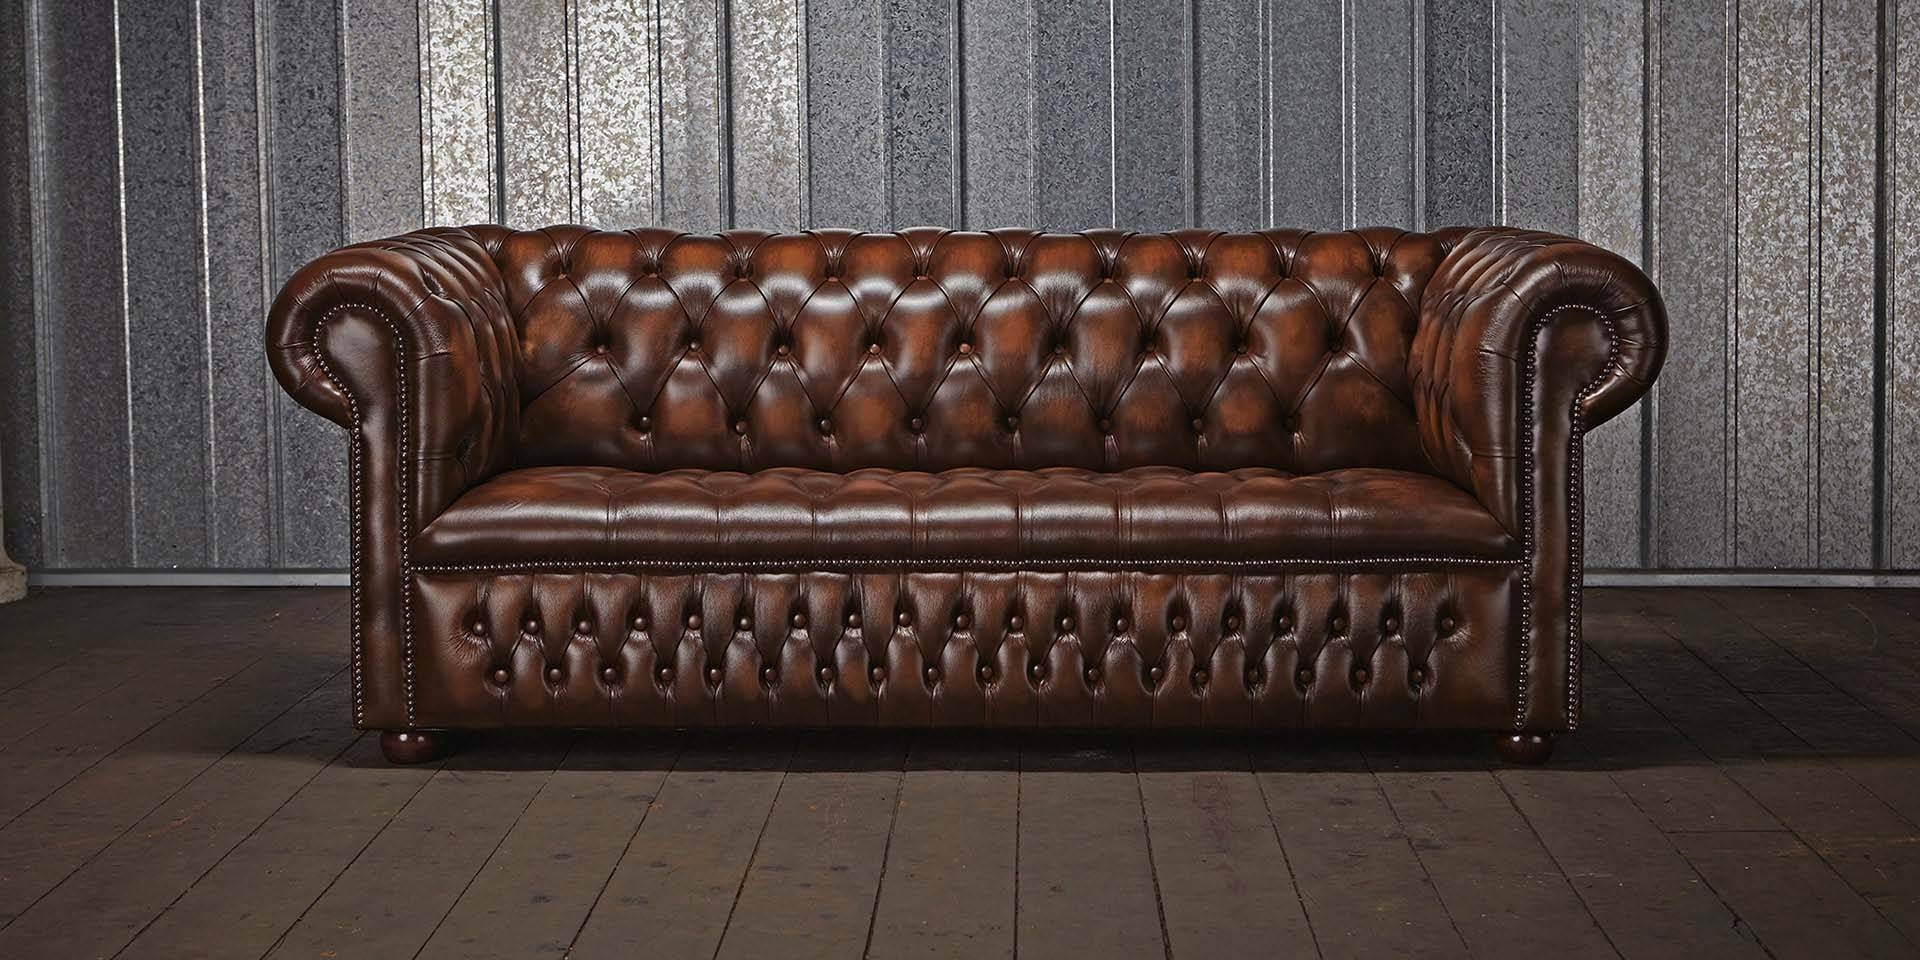 Chesterfields Of England | The Original Chesterfield Company intended for Chesterfield Furniture (Image 17 of 30)